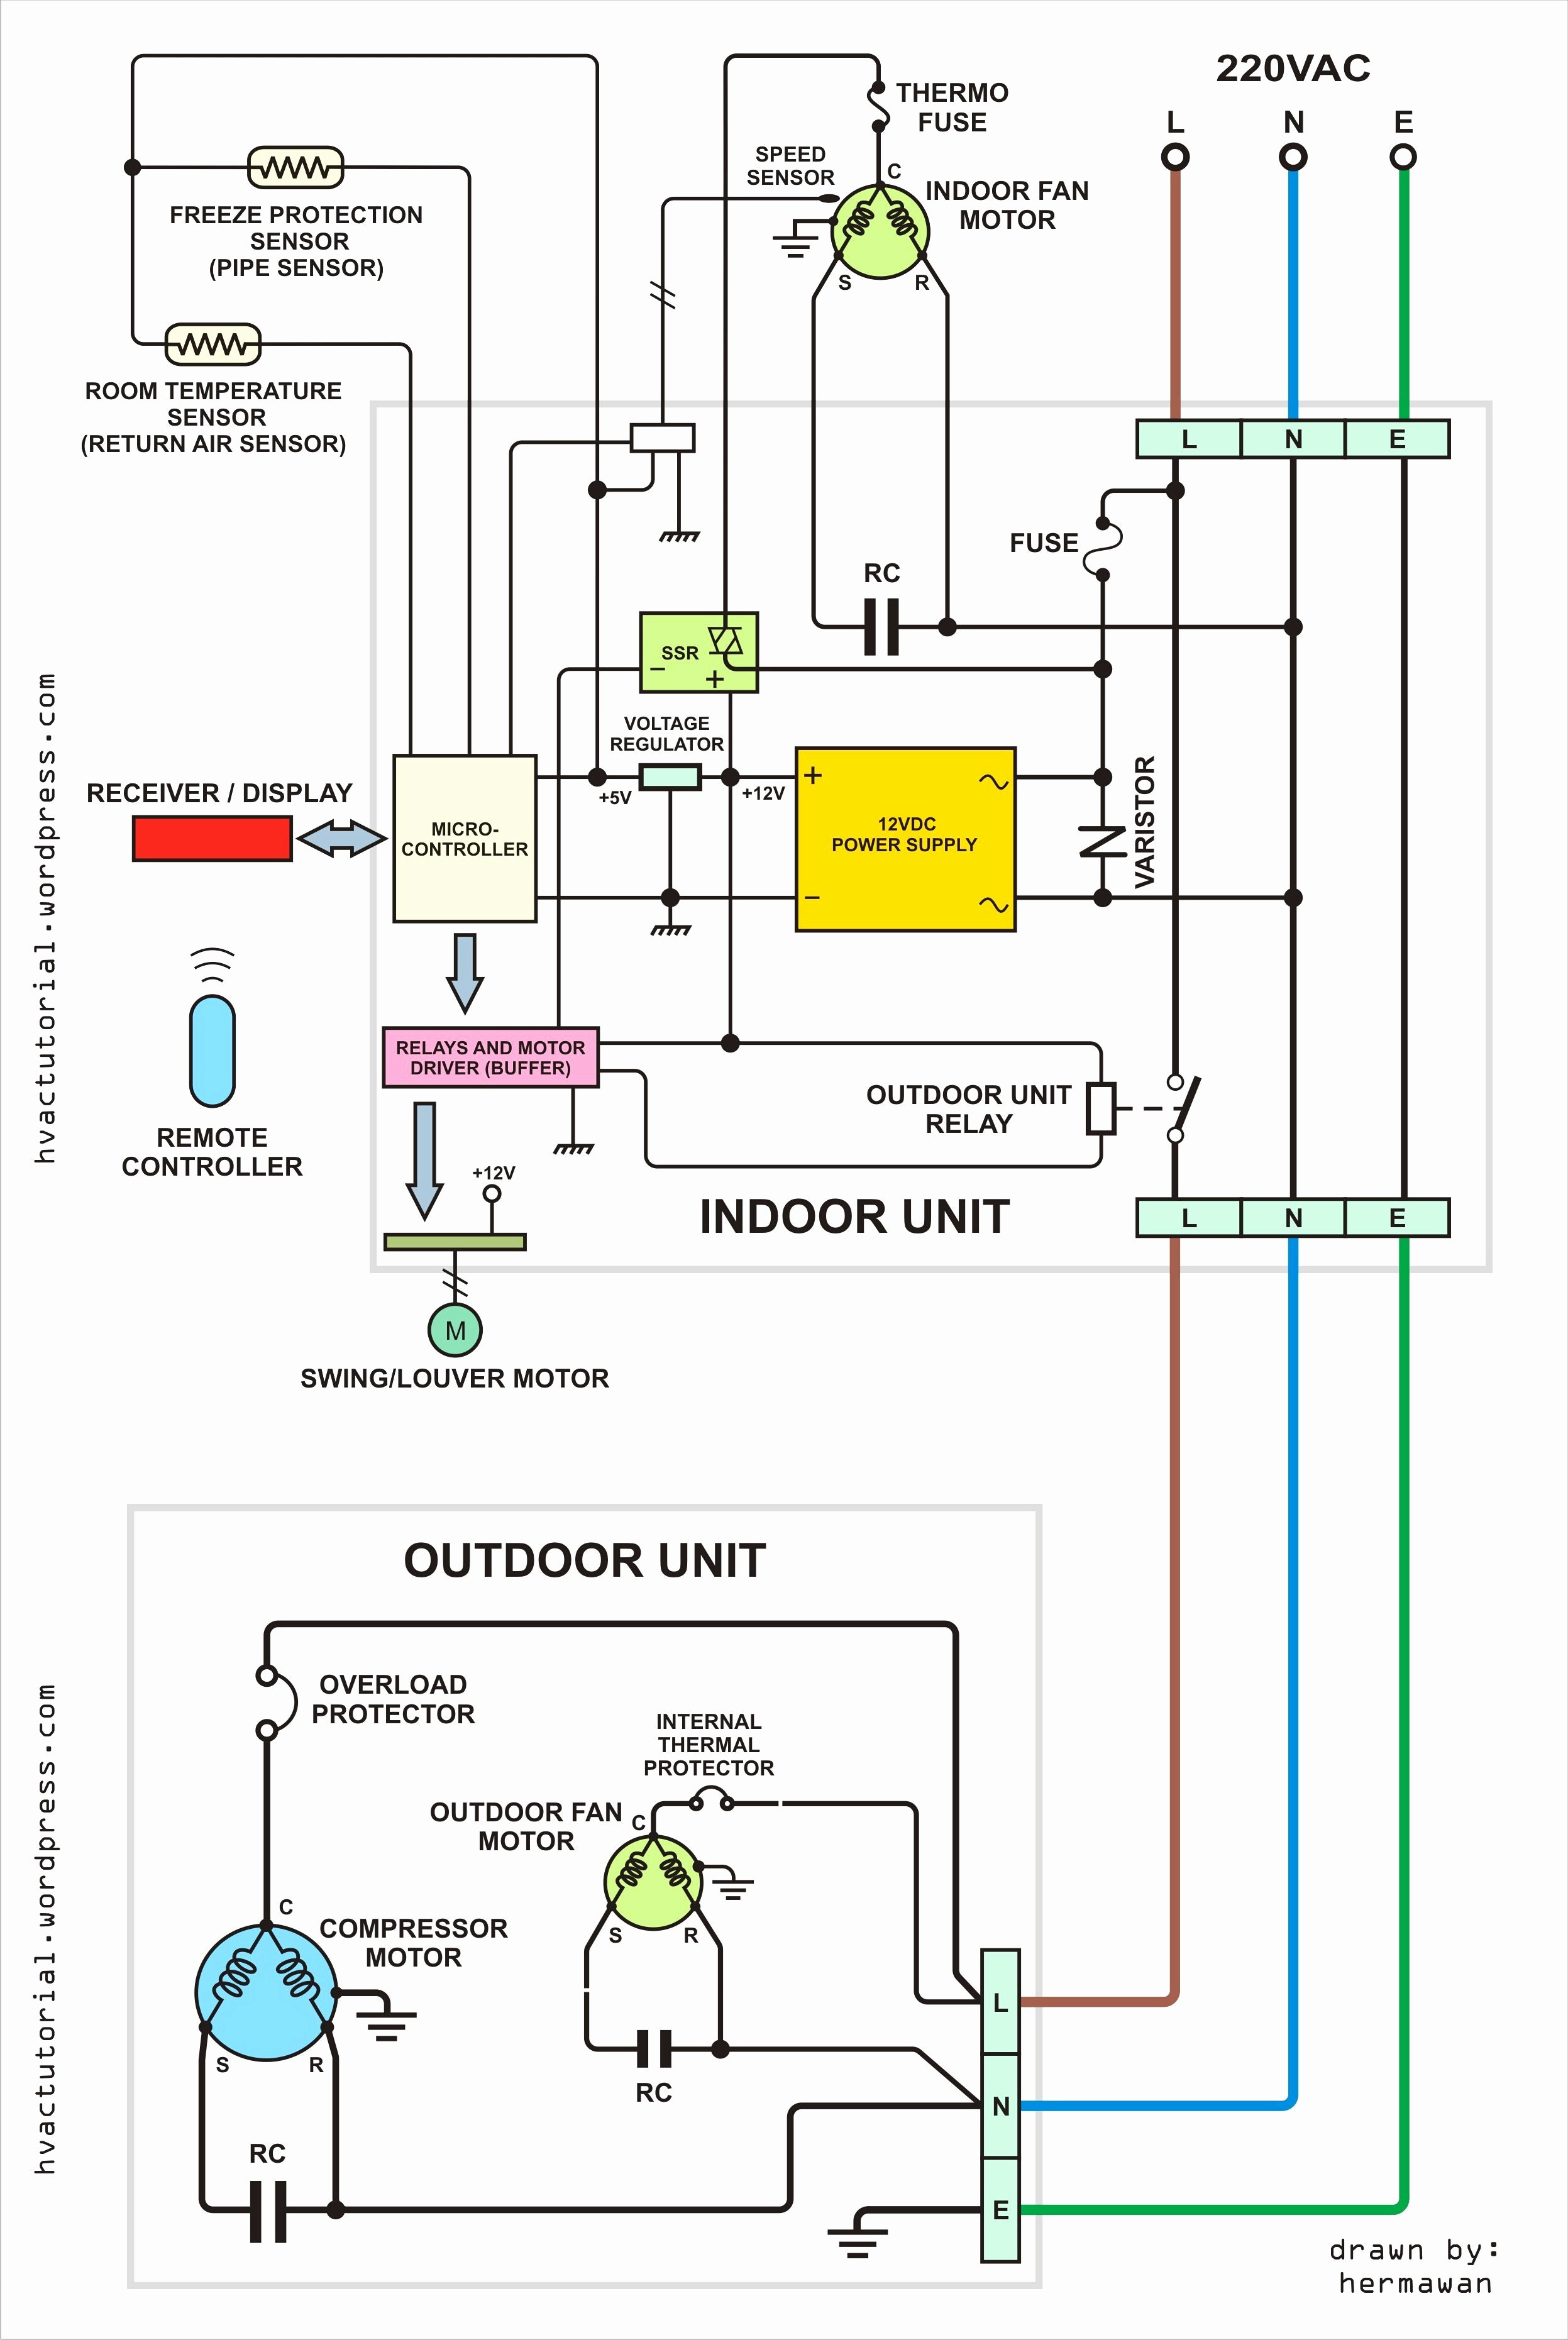 Get Residential Air Conditioner Wiring Diagram Download